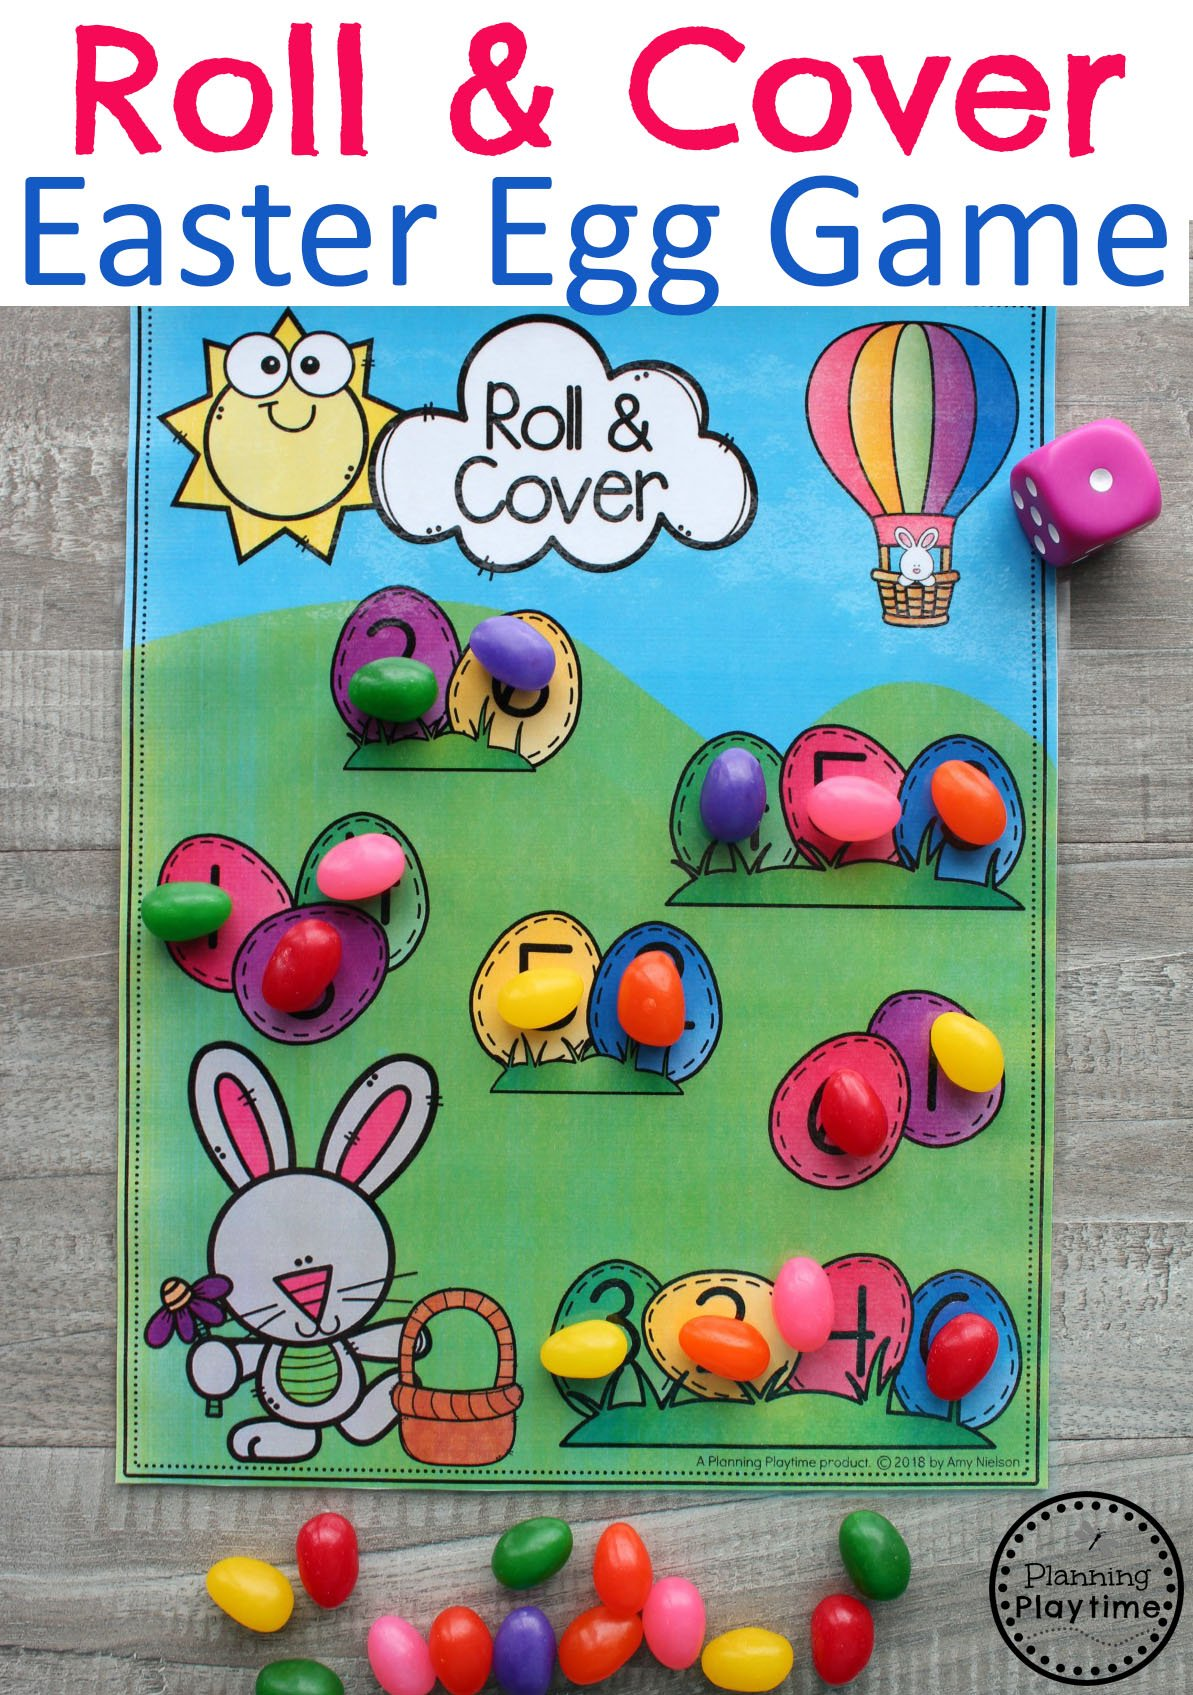 Preschool Easter Games - Roll and Cover Math fun. #easter #preschool #easteractivities #easterpreschool #planningplaytime #mathgames #mathworksheets #preschoolmath